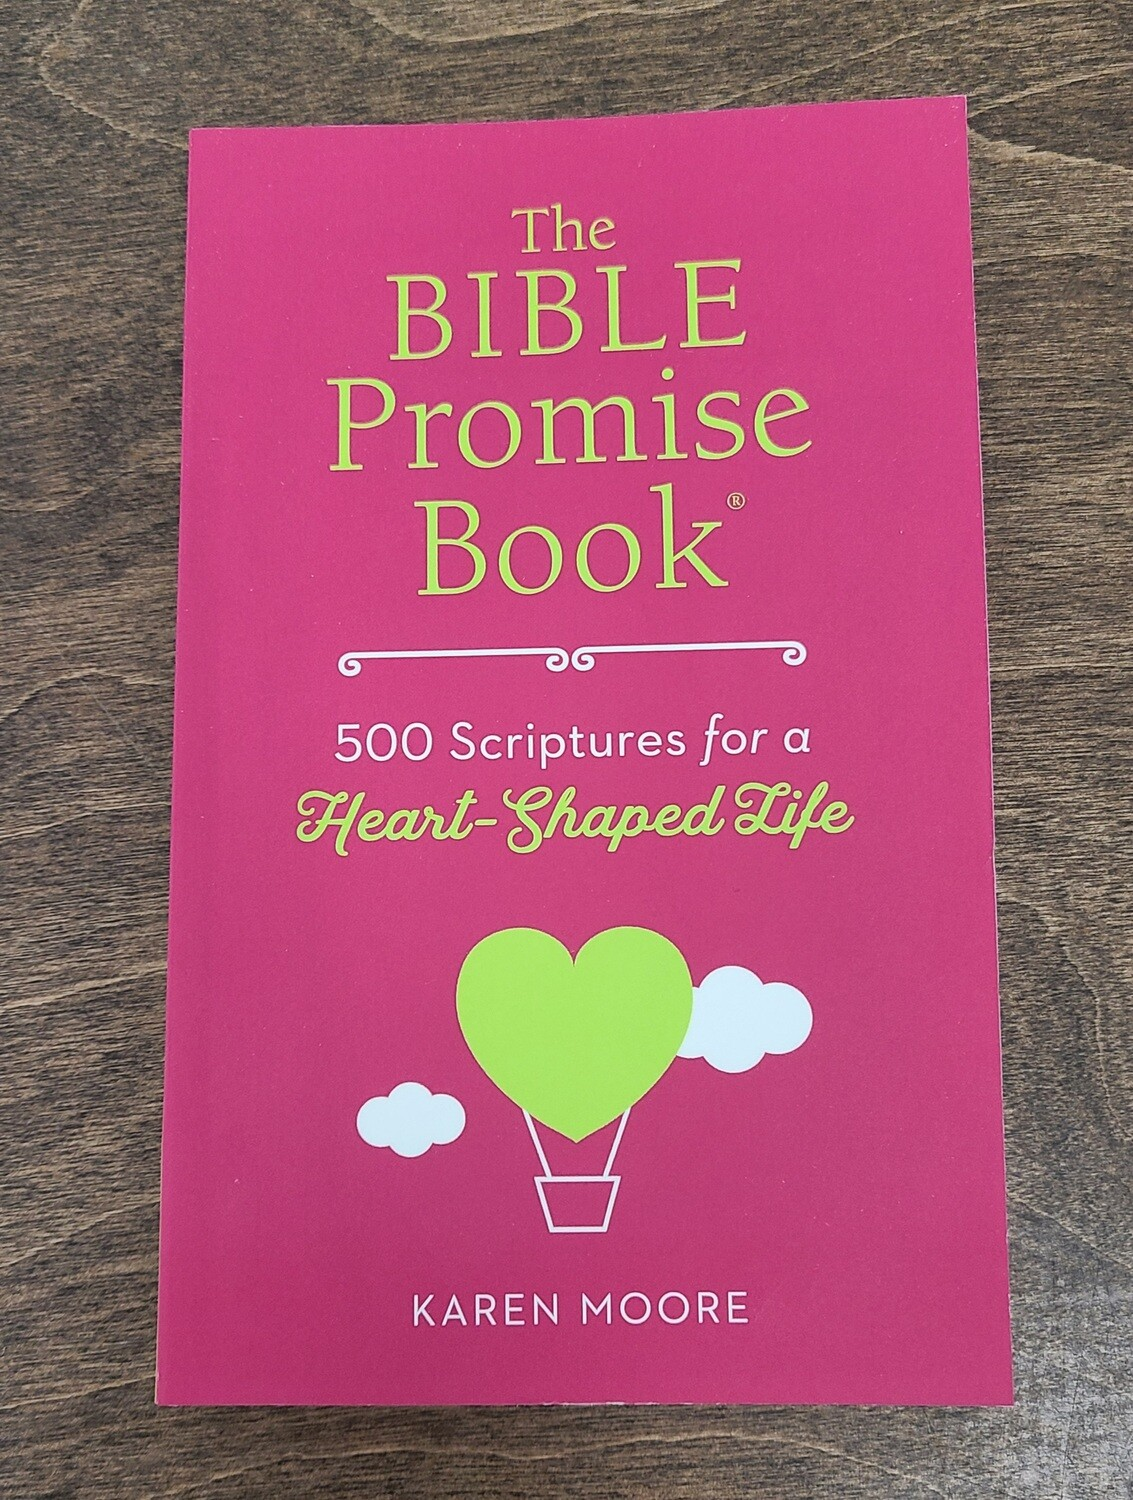 The Bible Promise Book: 500 Scriptures for a Heart-Shaped Life by Karen Moore